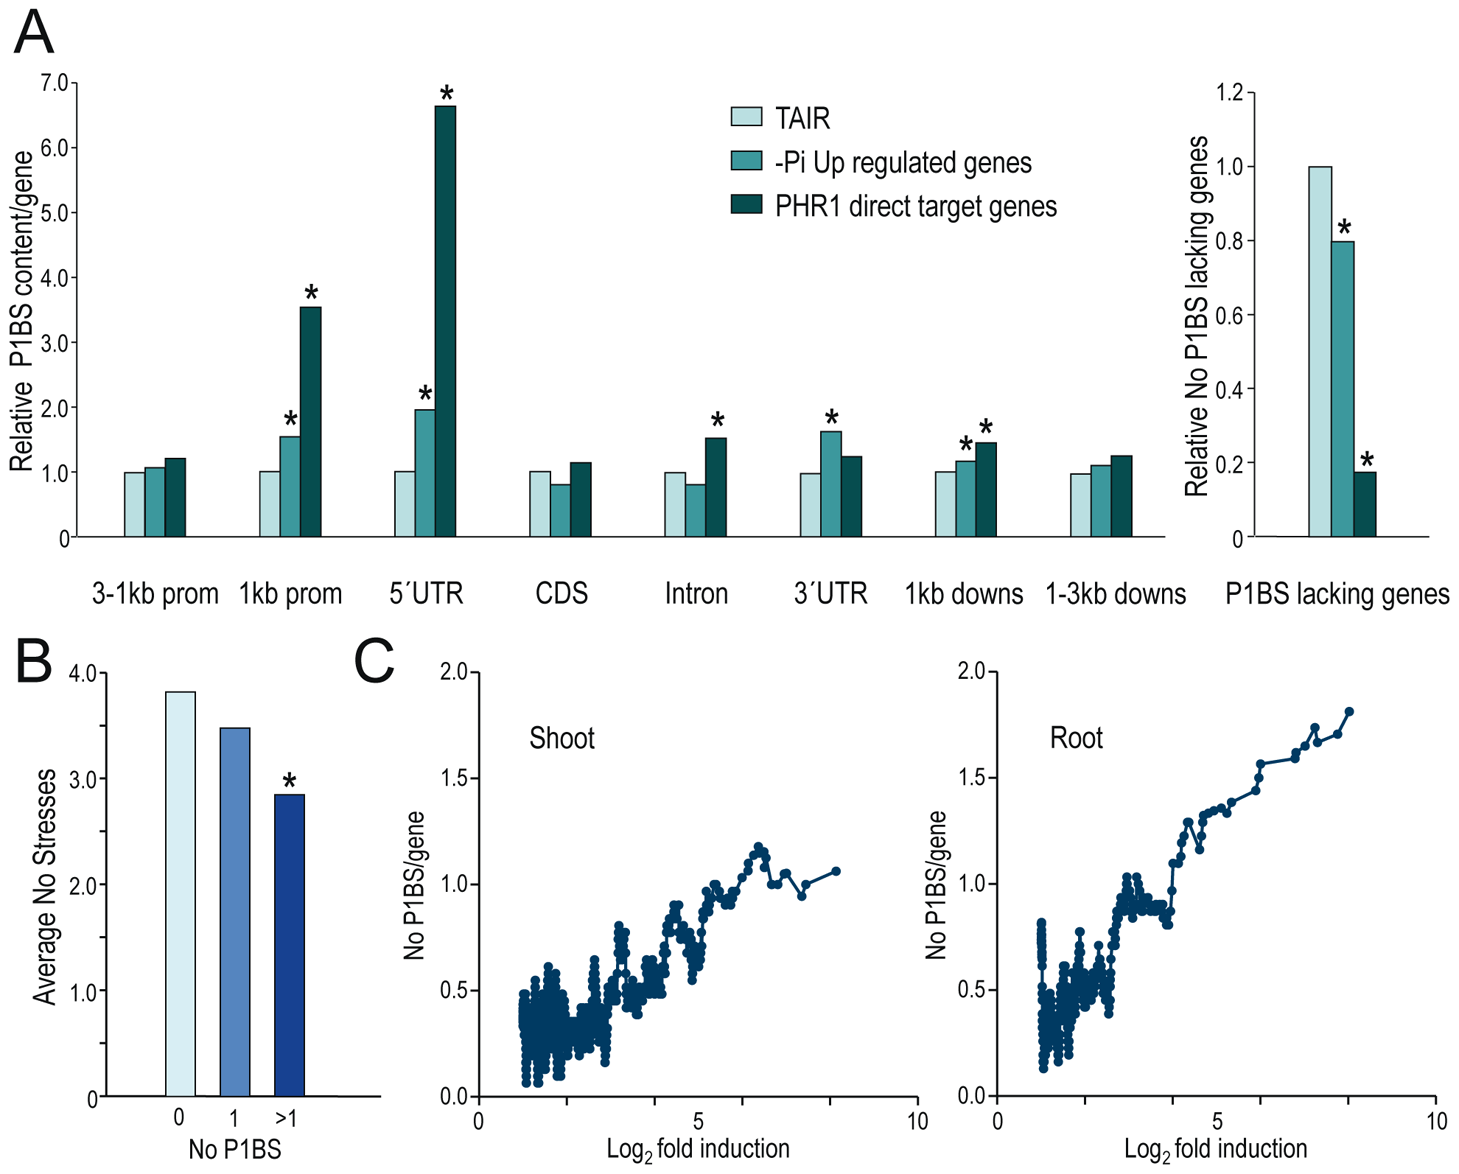 P1BS distribution over different gene parts of PHR1 direct targets and Pi starvation-responsive genes.